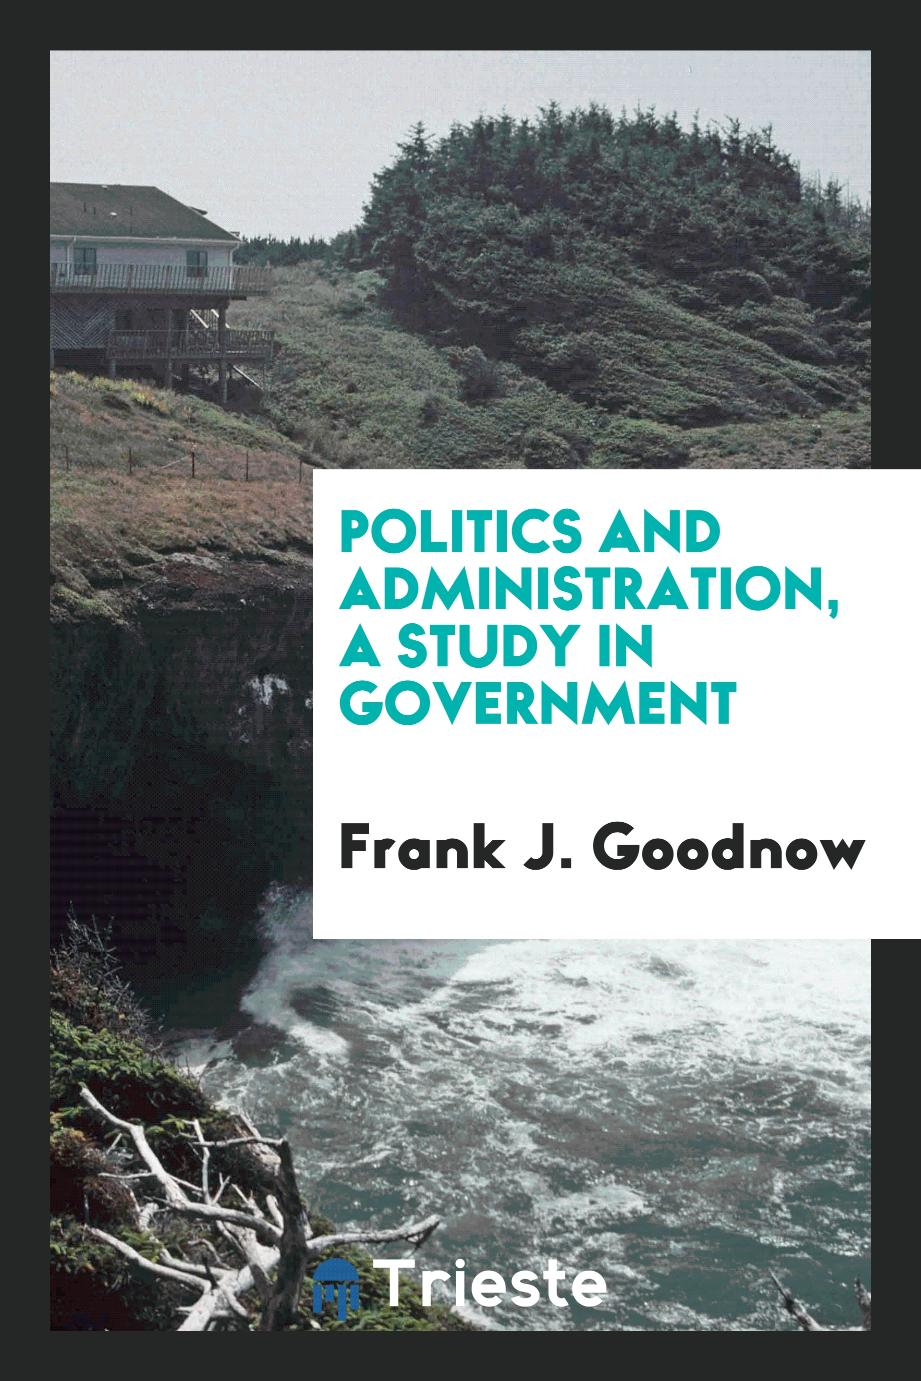 Politics and administration, a study in government